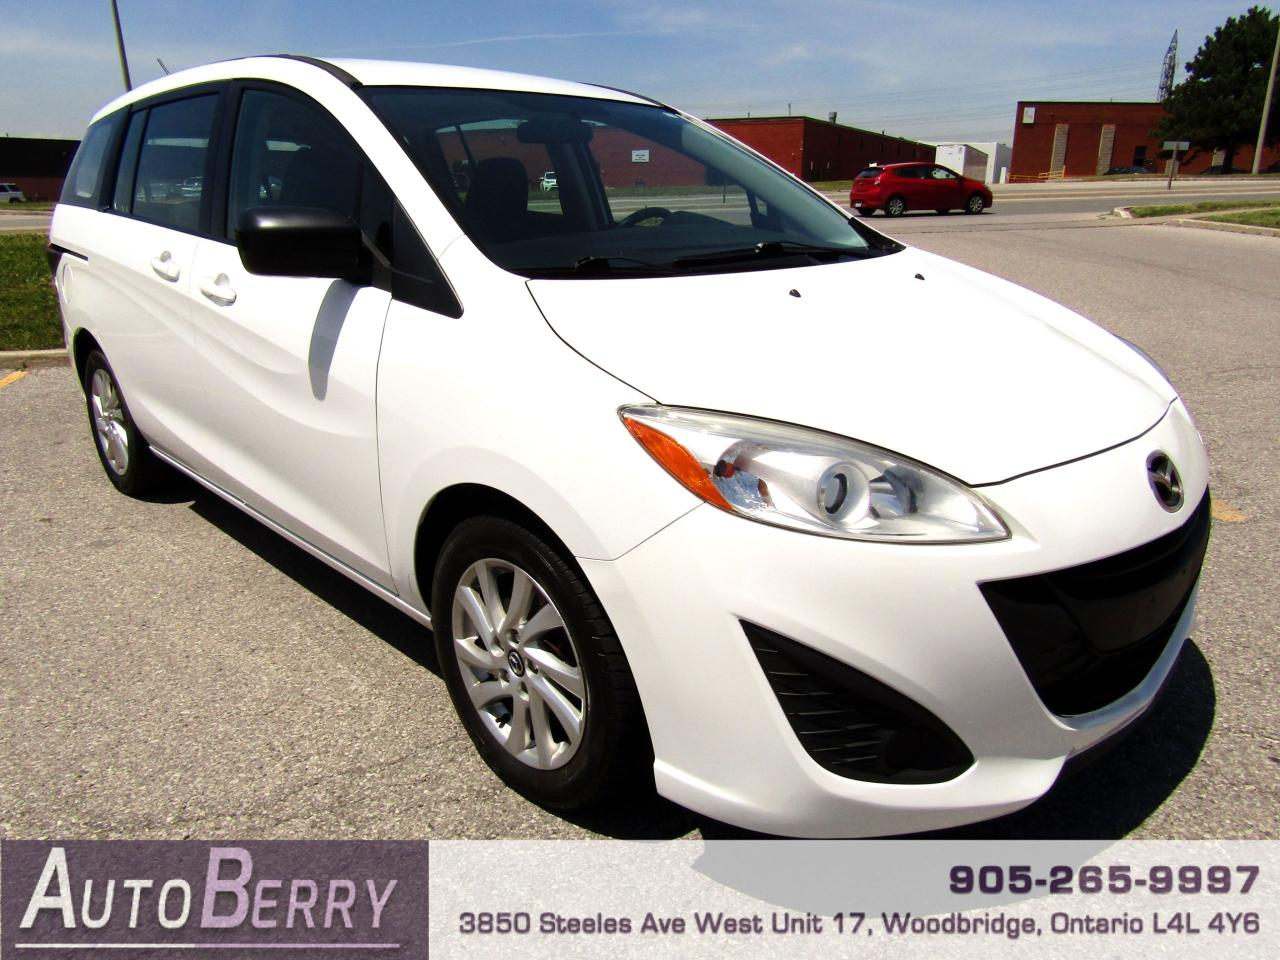 31e1452a7c Used 2013 Mazda MAZDA5 GS - 2.5L - FWD - 6 Passenger for Sale in  Woodbridge